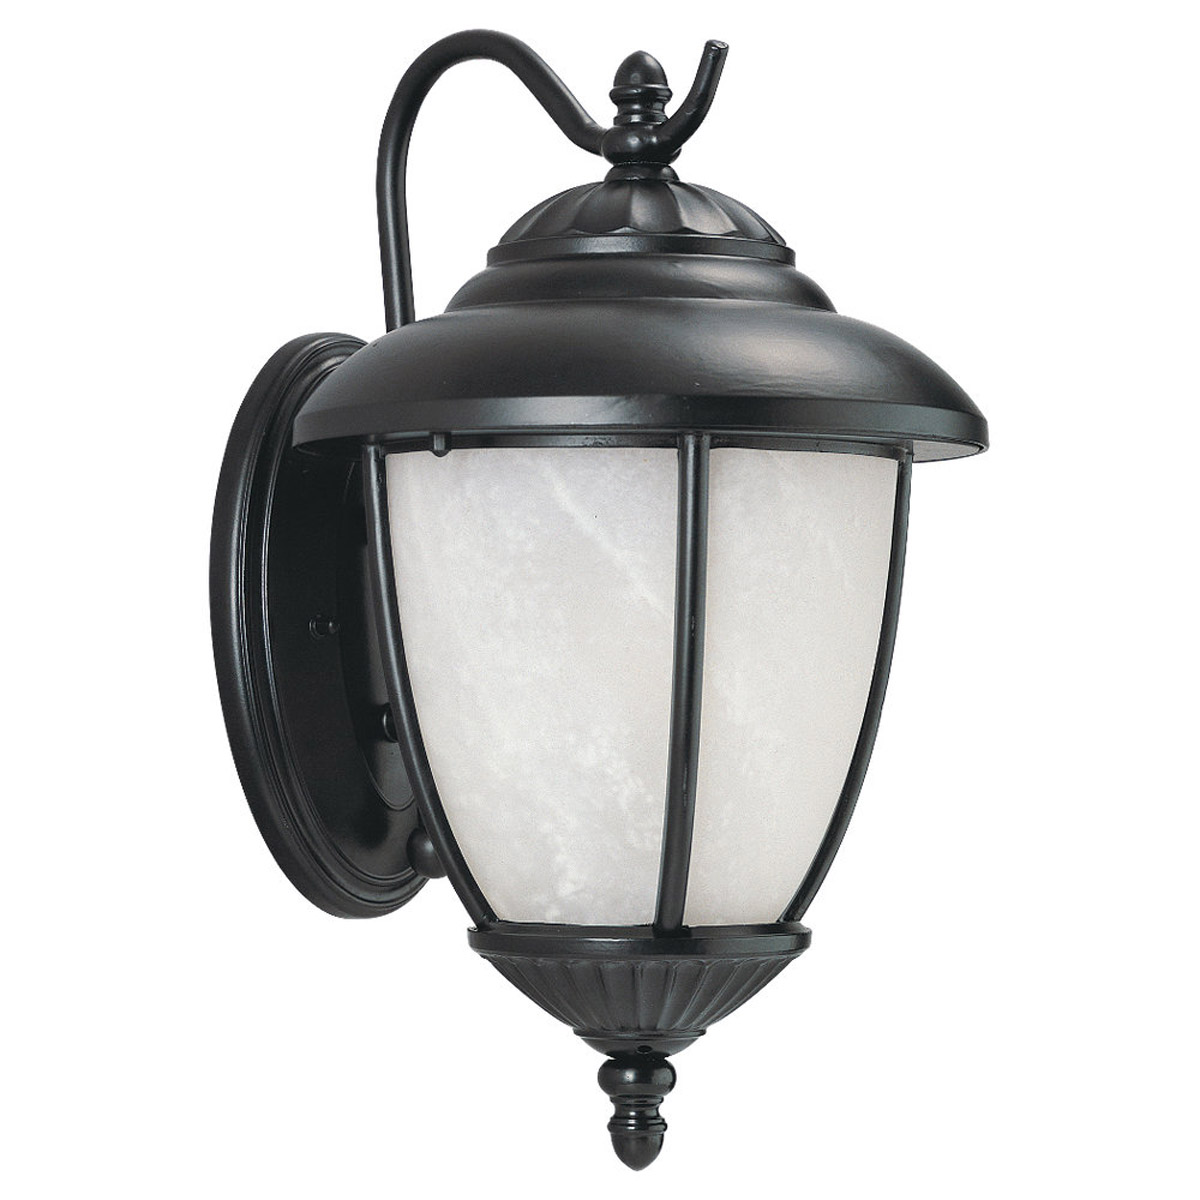 Sea Gull 89250PBLE-12 Yorktowne 1 Light 16 inch Black Outdoor Wall Lantern in Photocell, Energy Efficient photo